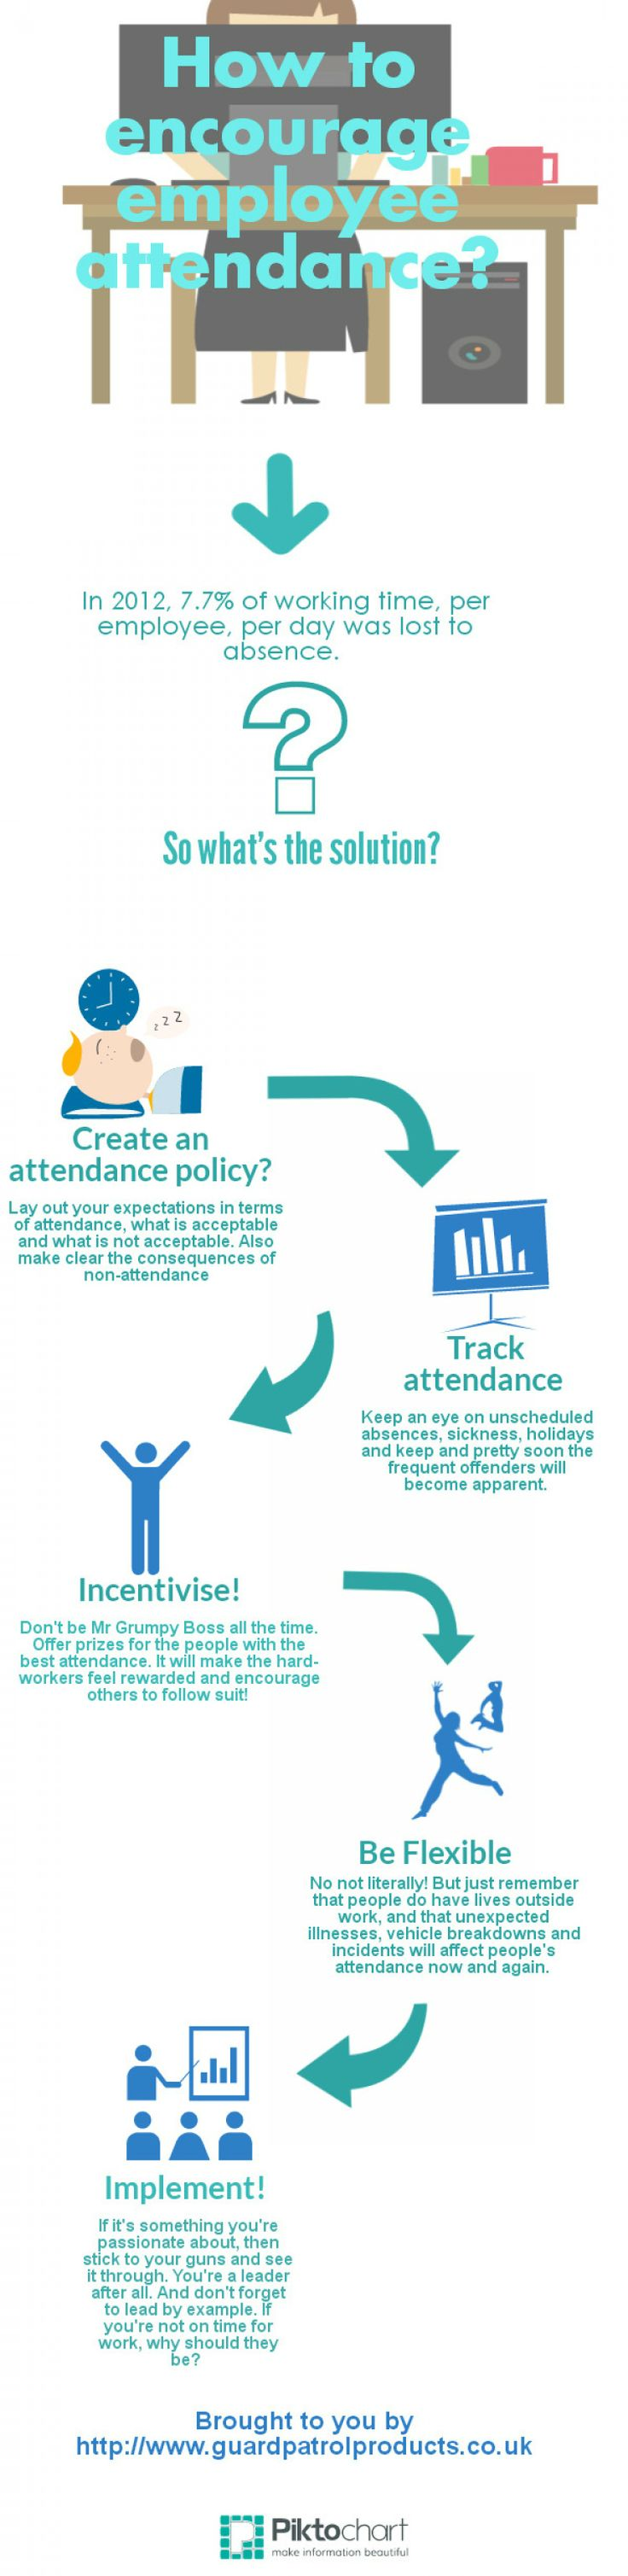 How to shape your business's attendance policy.